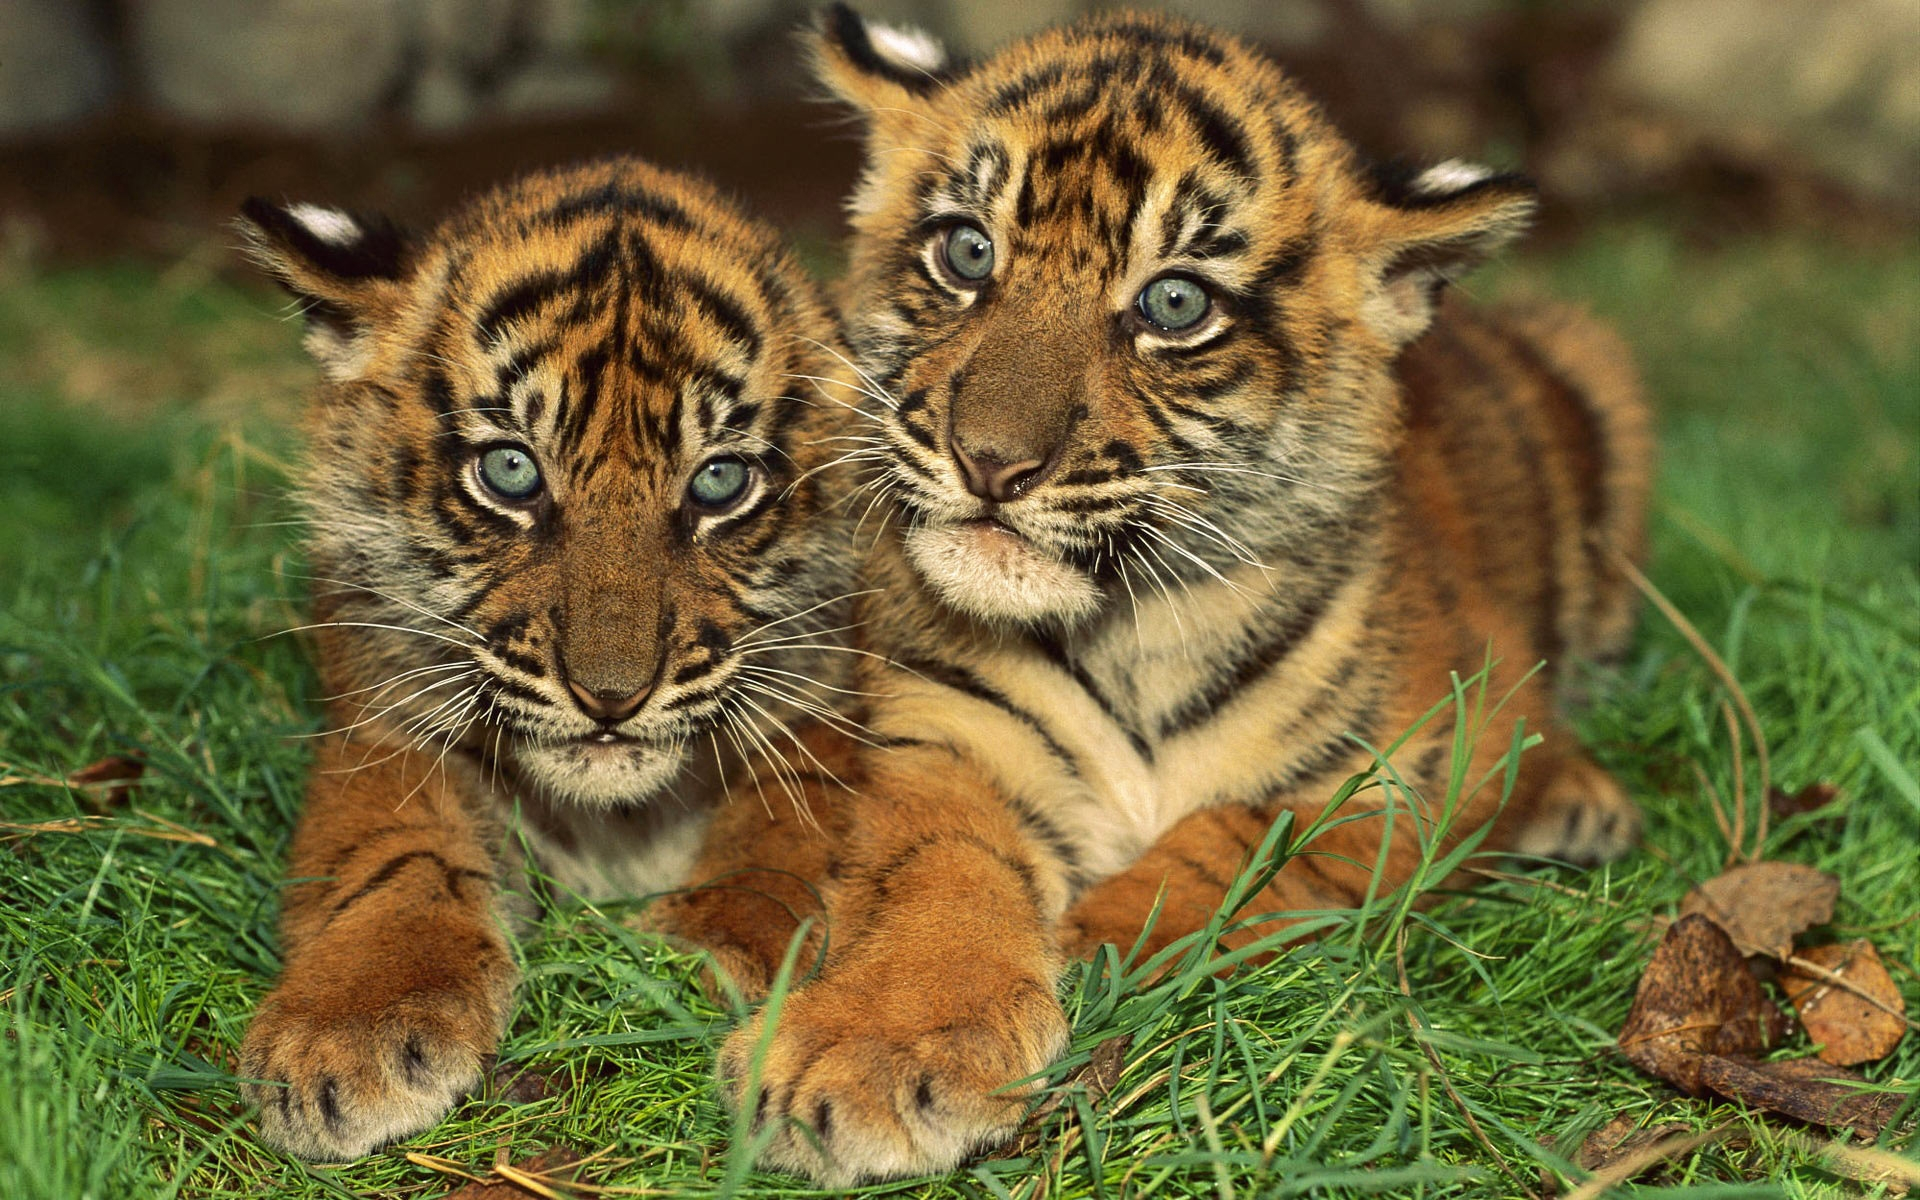 37931 download wallpaper Animals, Tigers screensavers and pictures for free